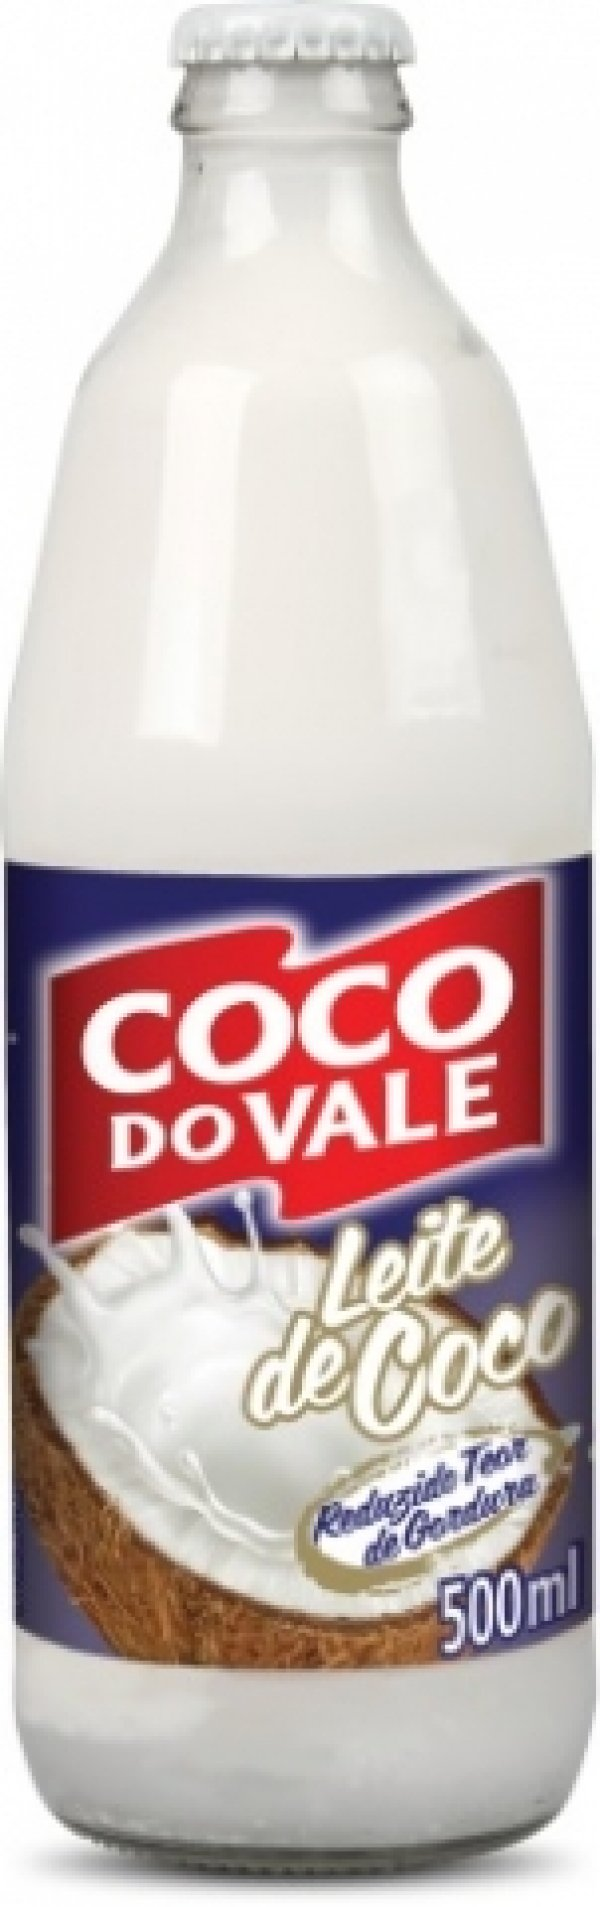 Dovale - Coco